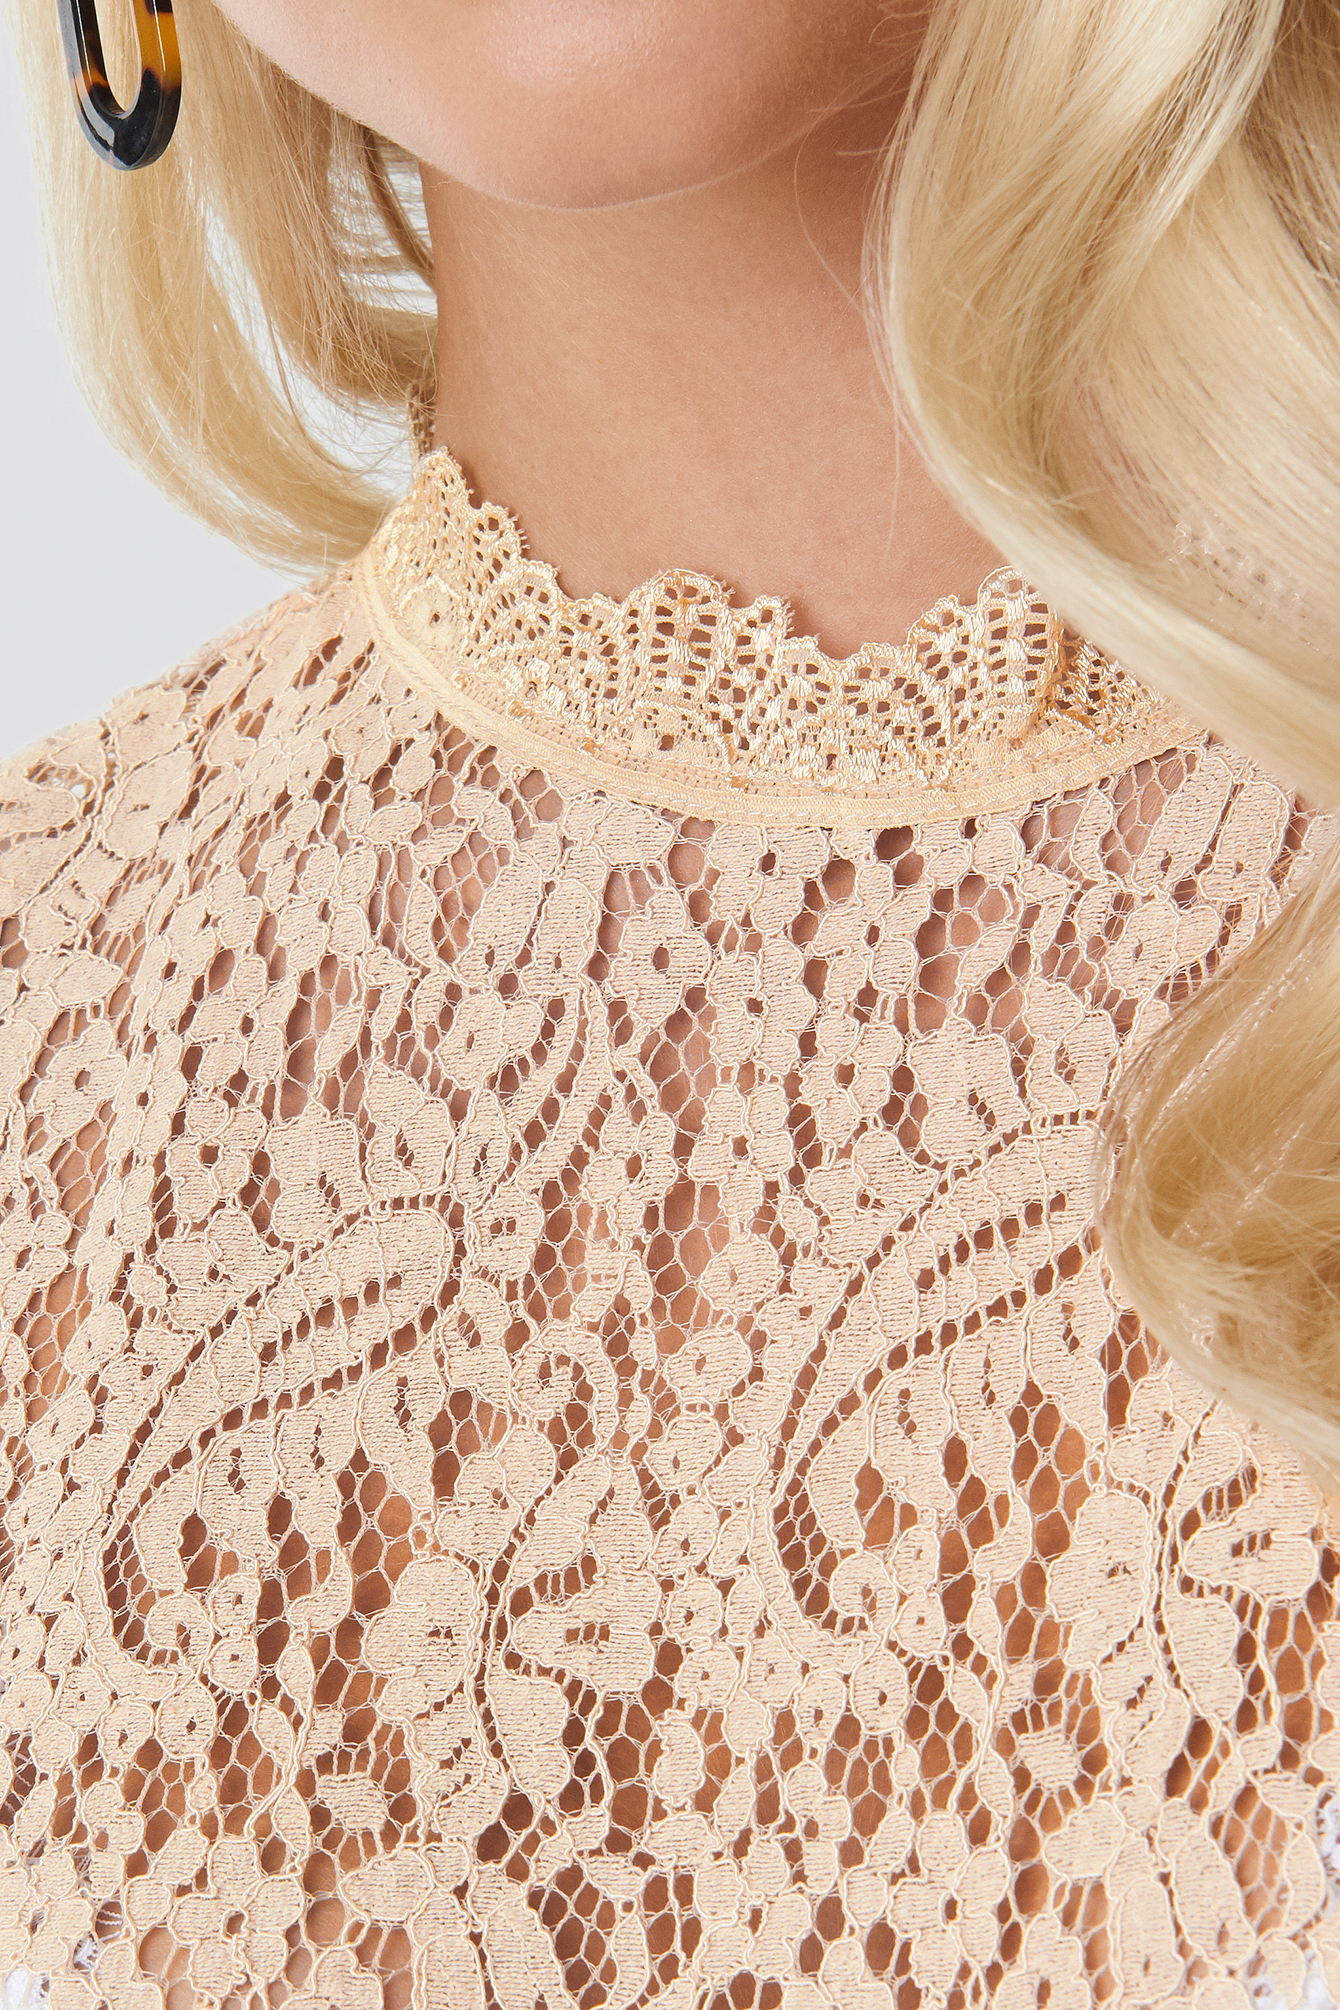 Cream High Neck Short Sleeve Lace Top